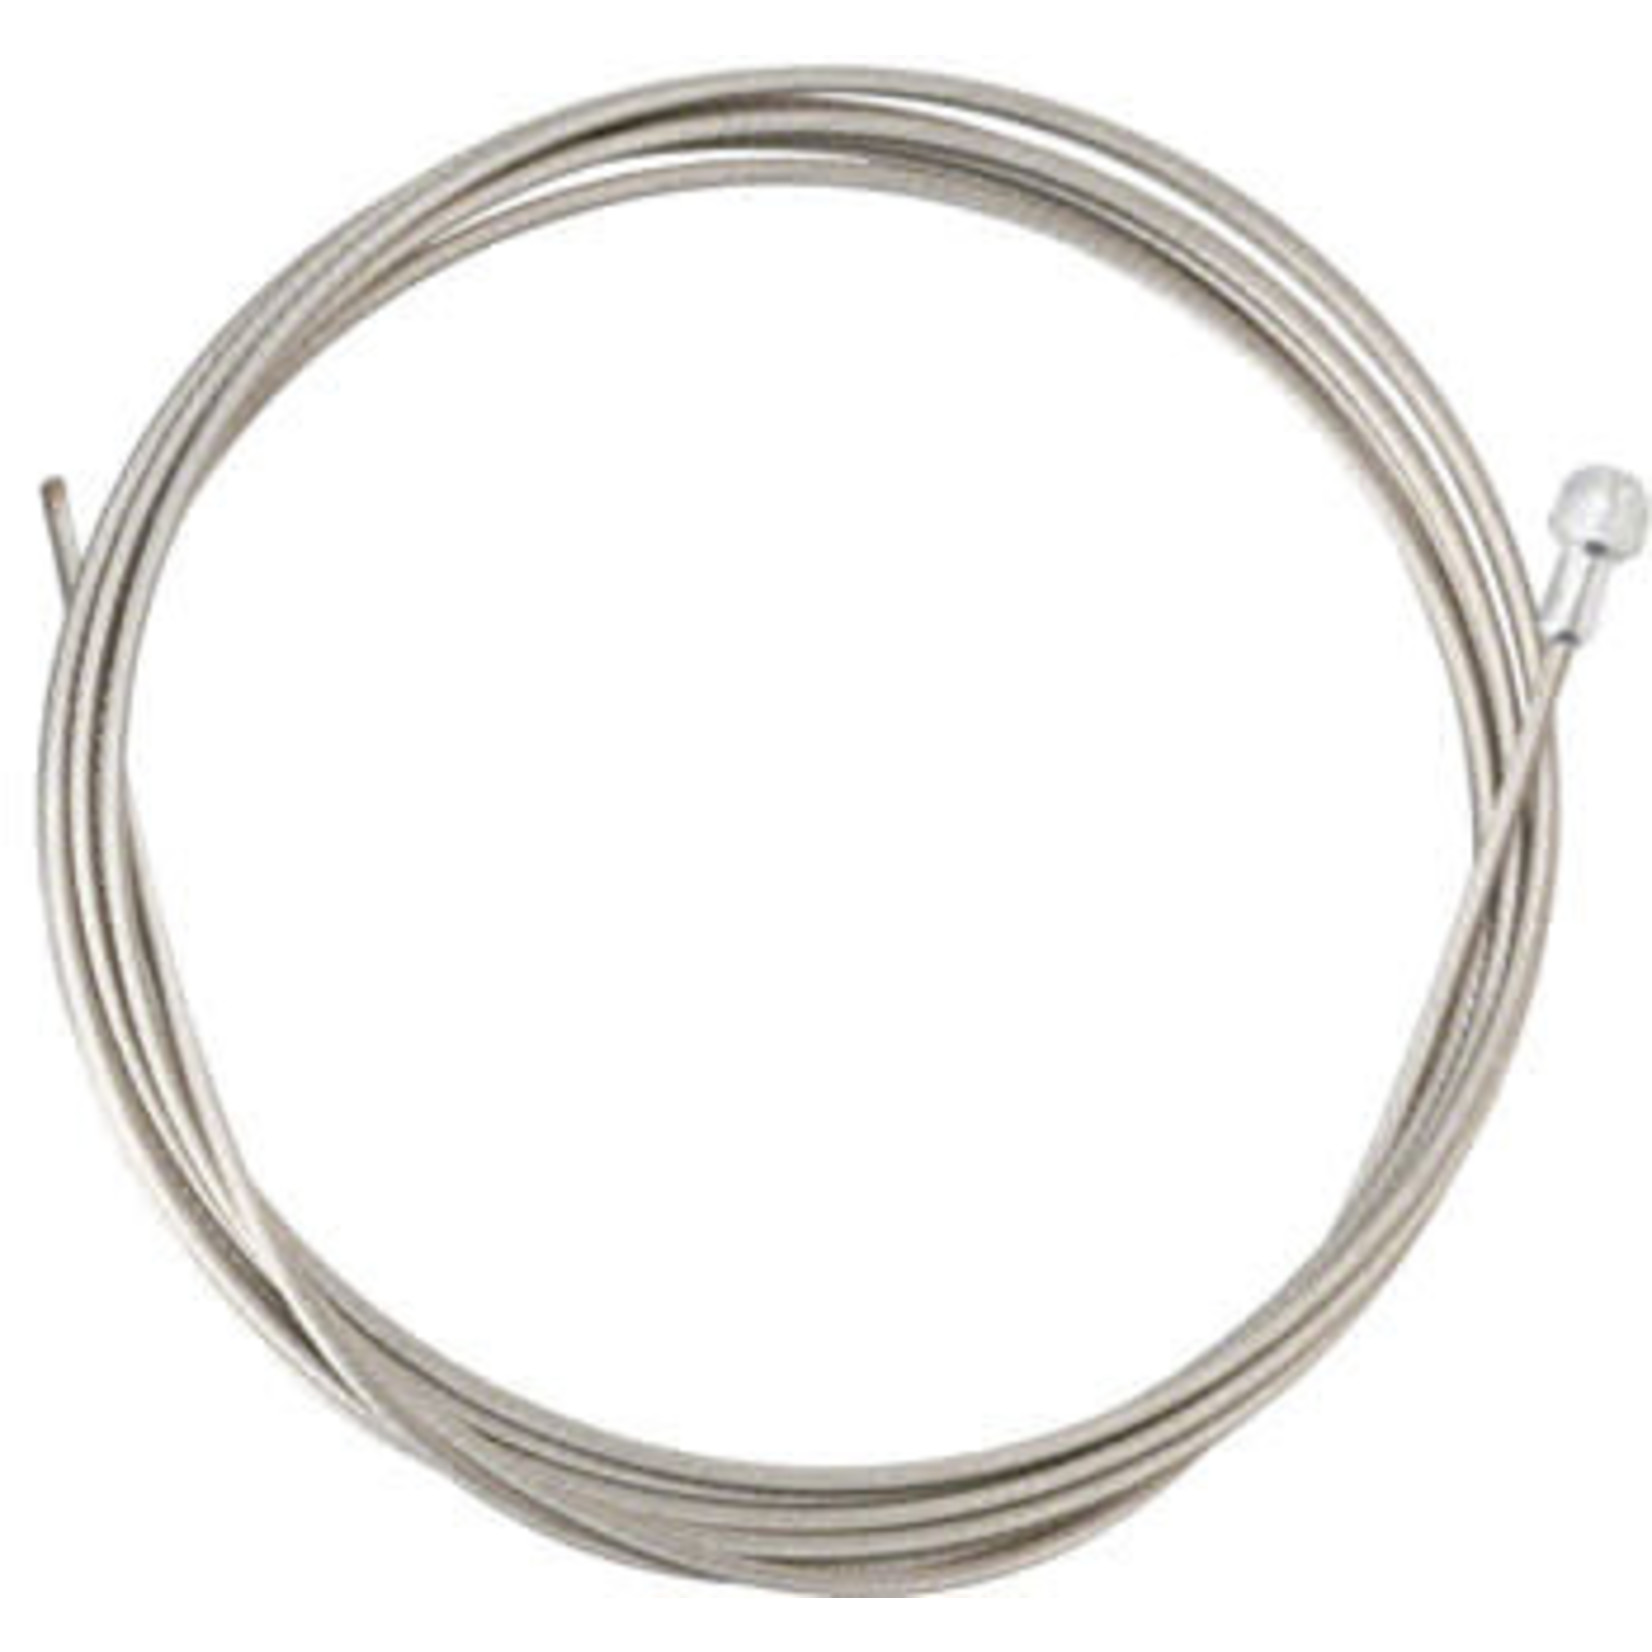 Shimano Road Inner Brake Cable 2.05m x 1.6mm Stainless